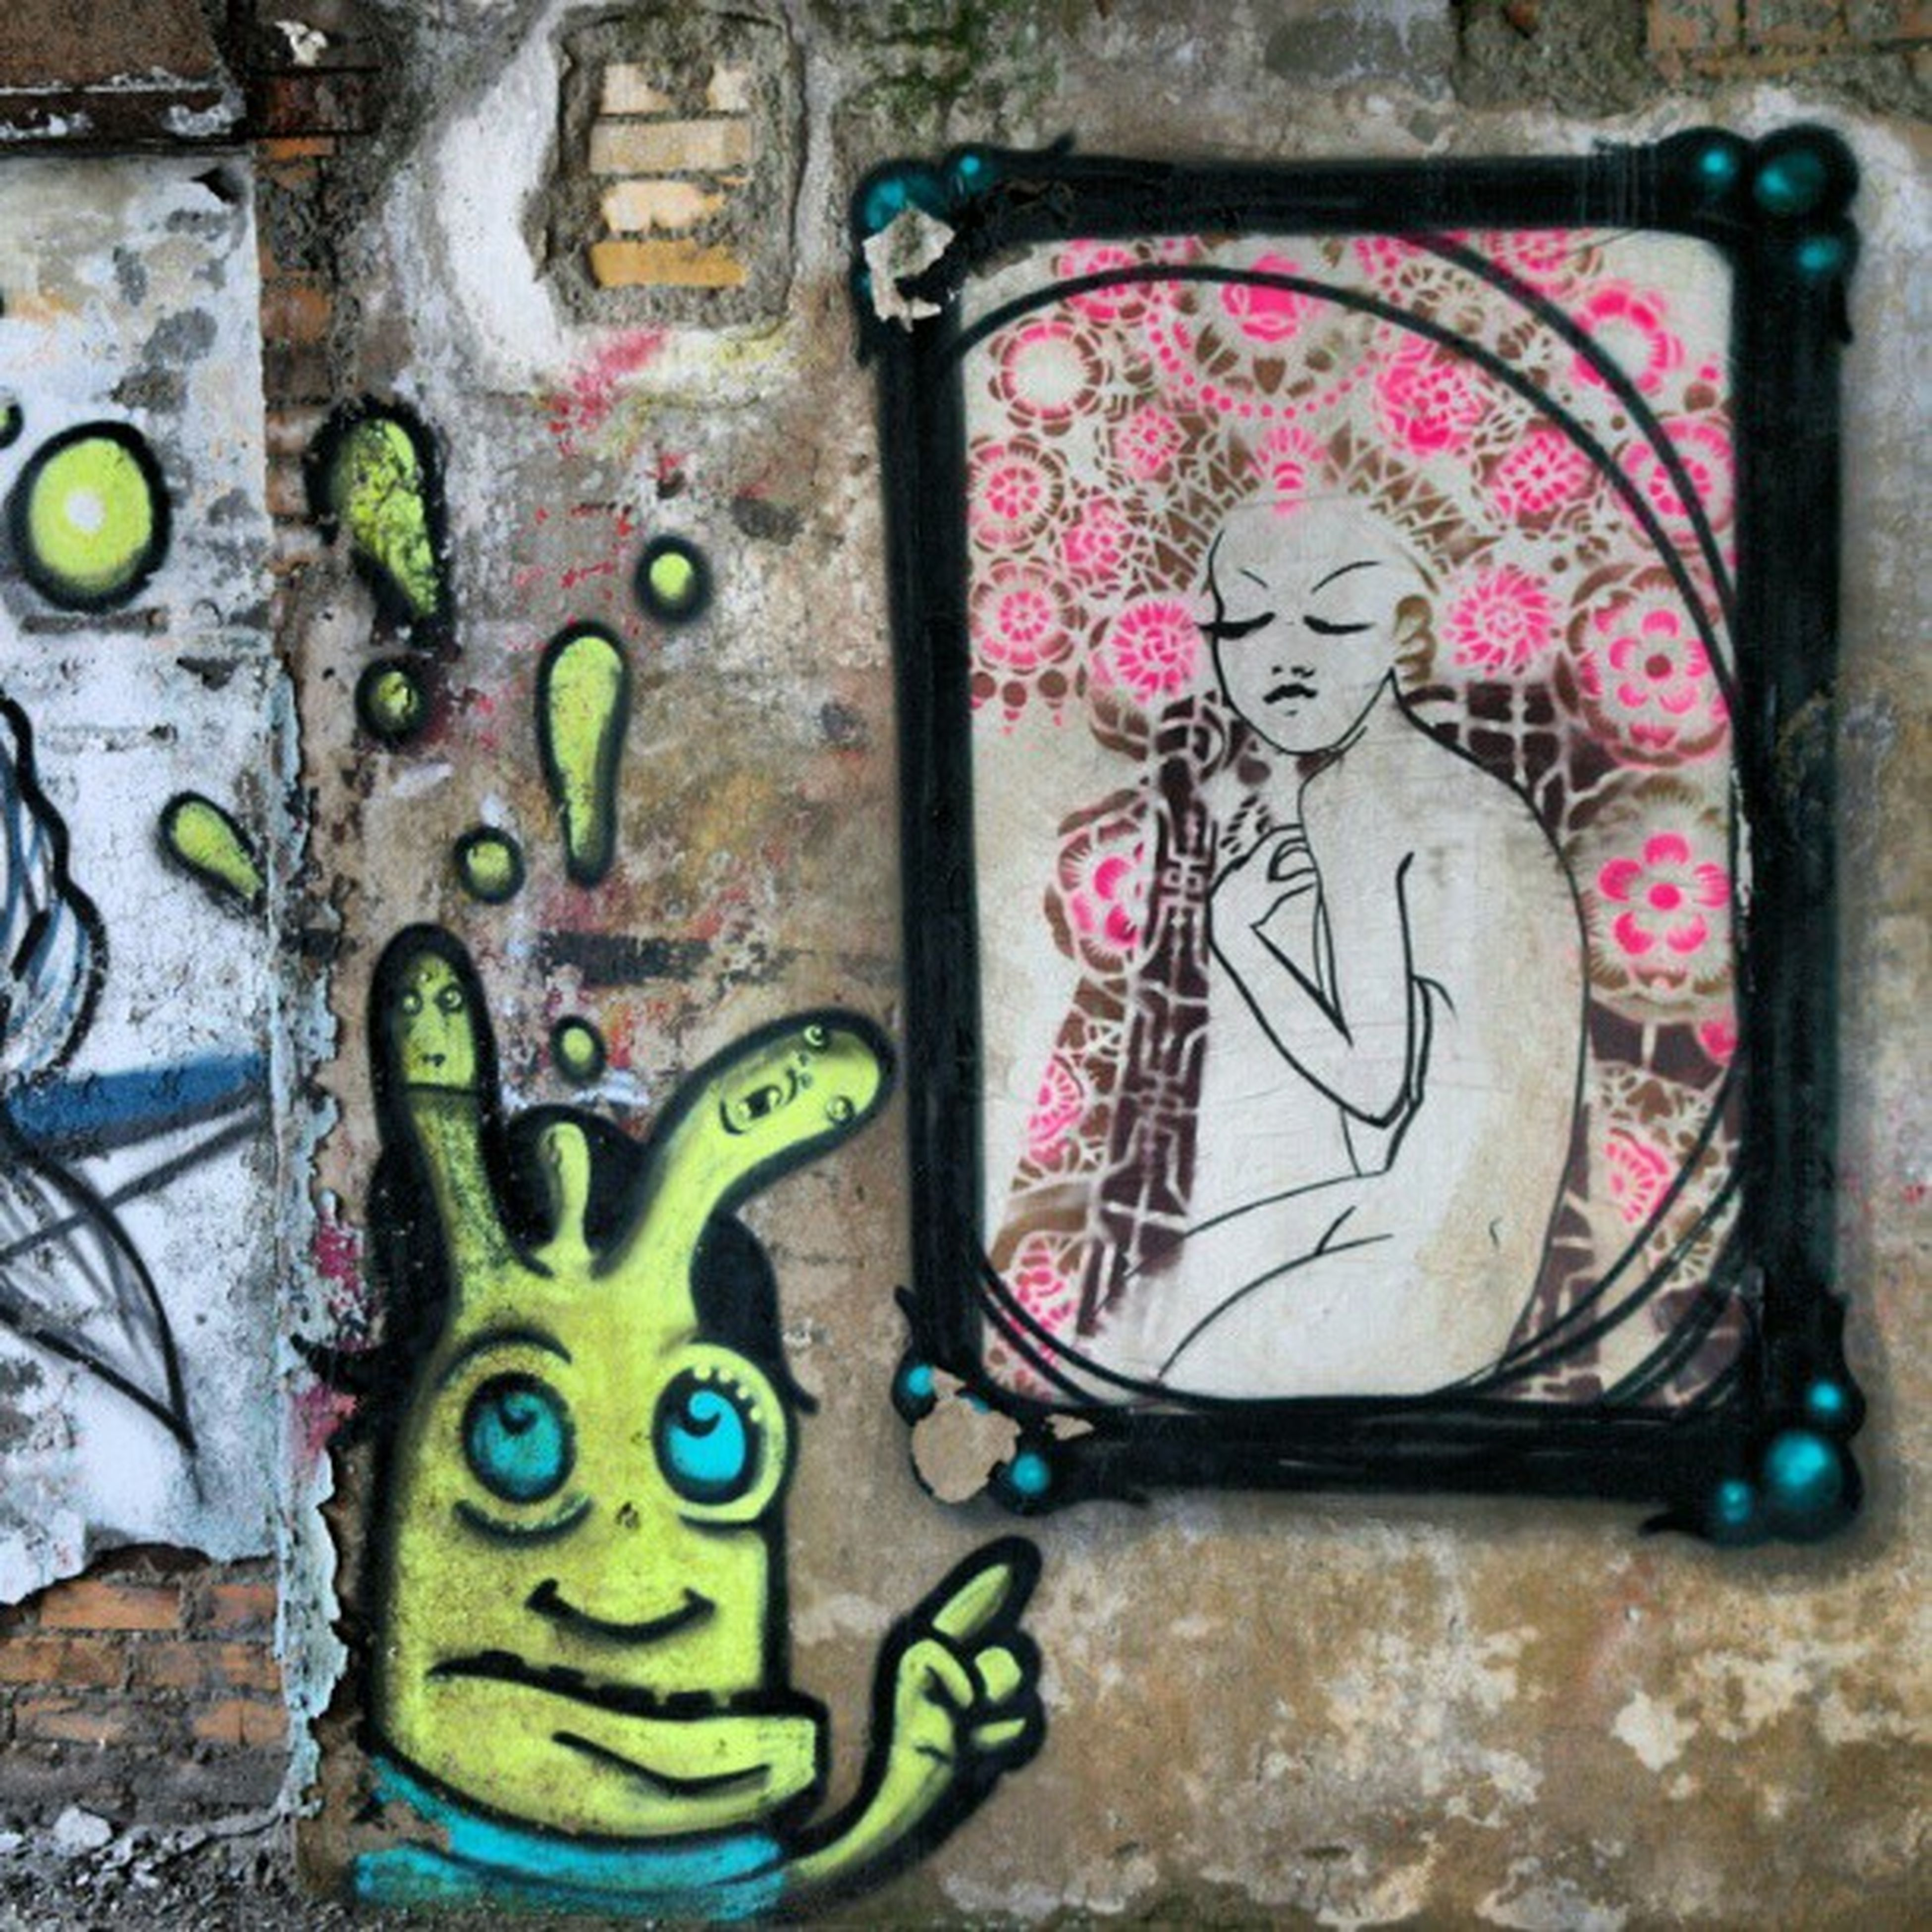 art, art and craft, creativity, graffiti, wall - building feature, multi colored, built structure, human representation, architecture, wall, close-up, street art, design, old, pattern, no people, day, weathered, mural, animal representation